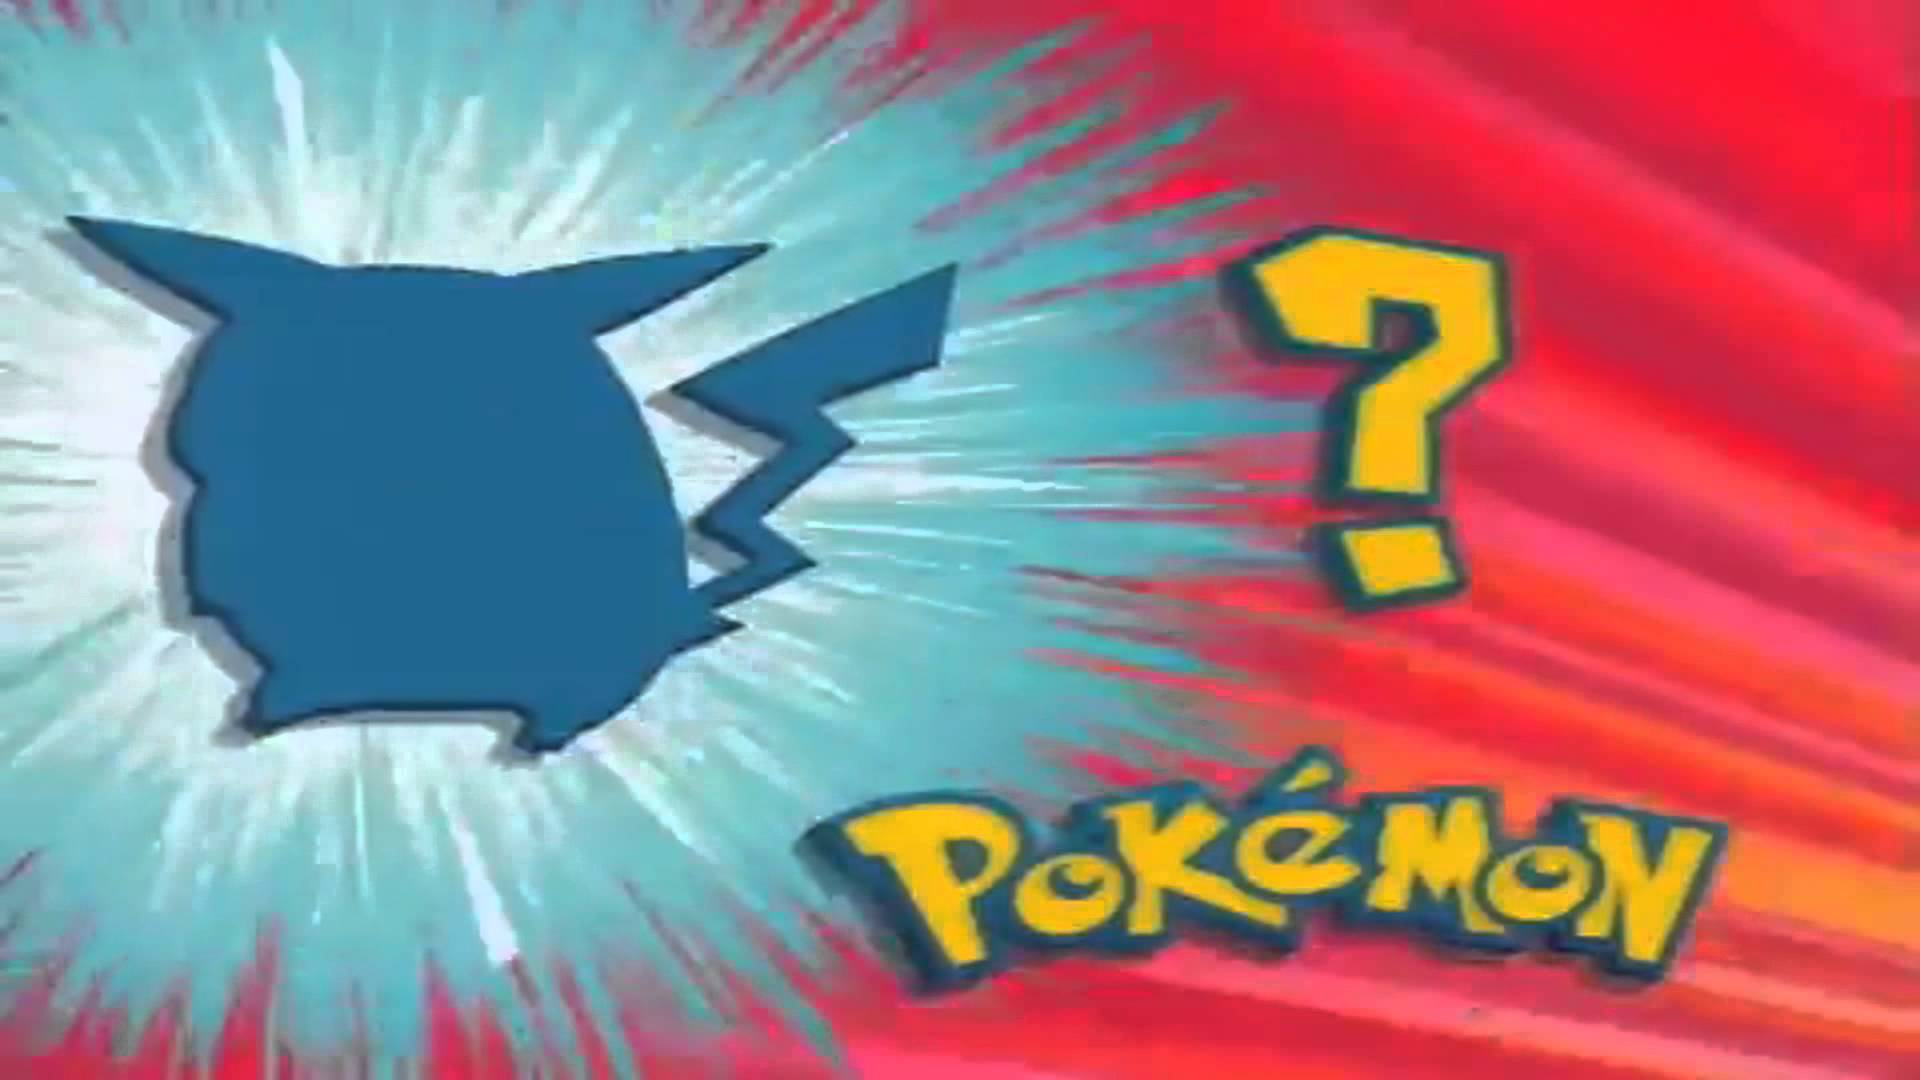 Who's that Pokemon Blank Template - Imgflip